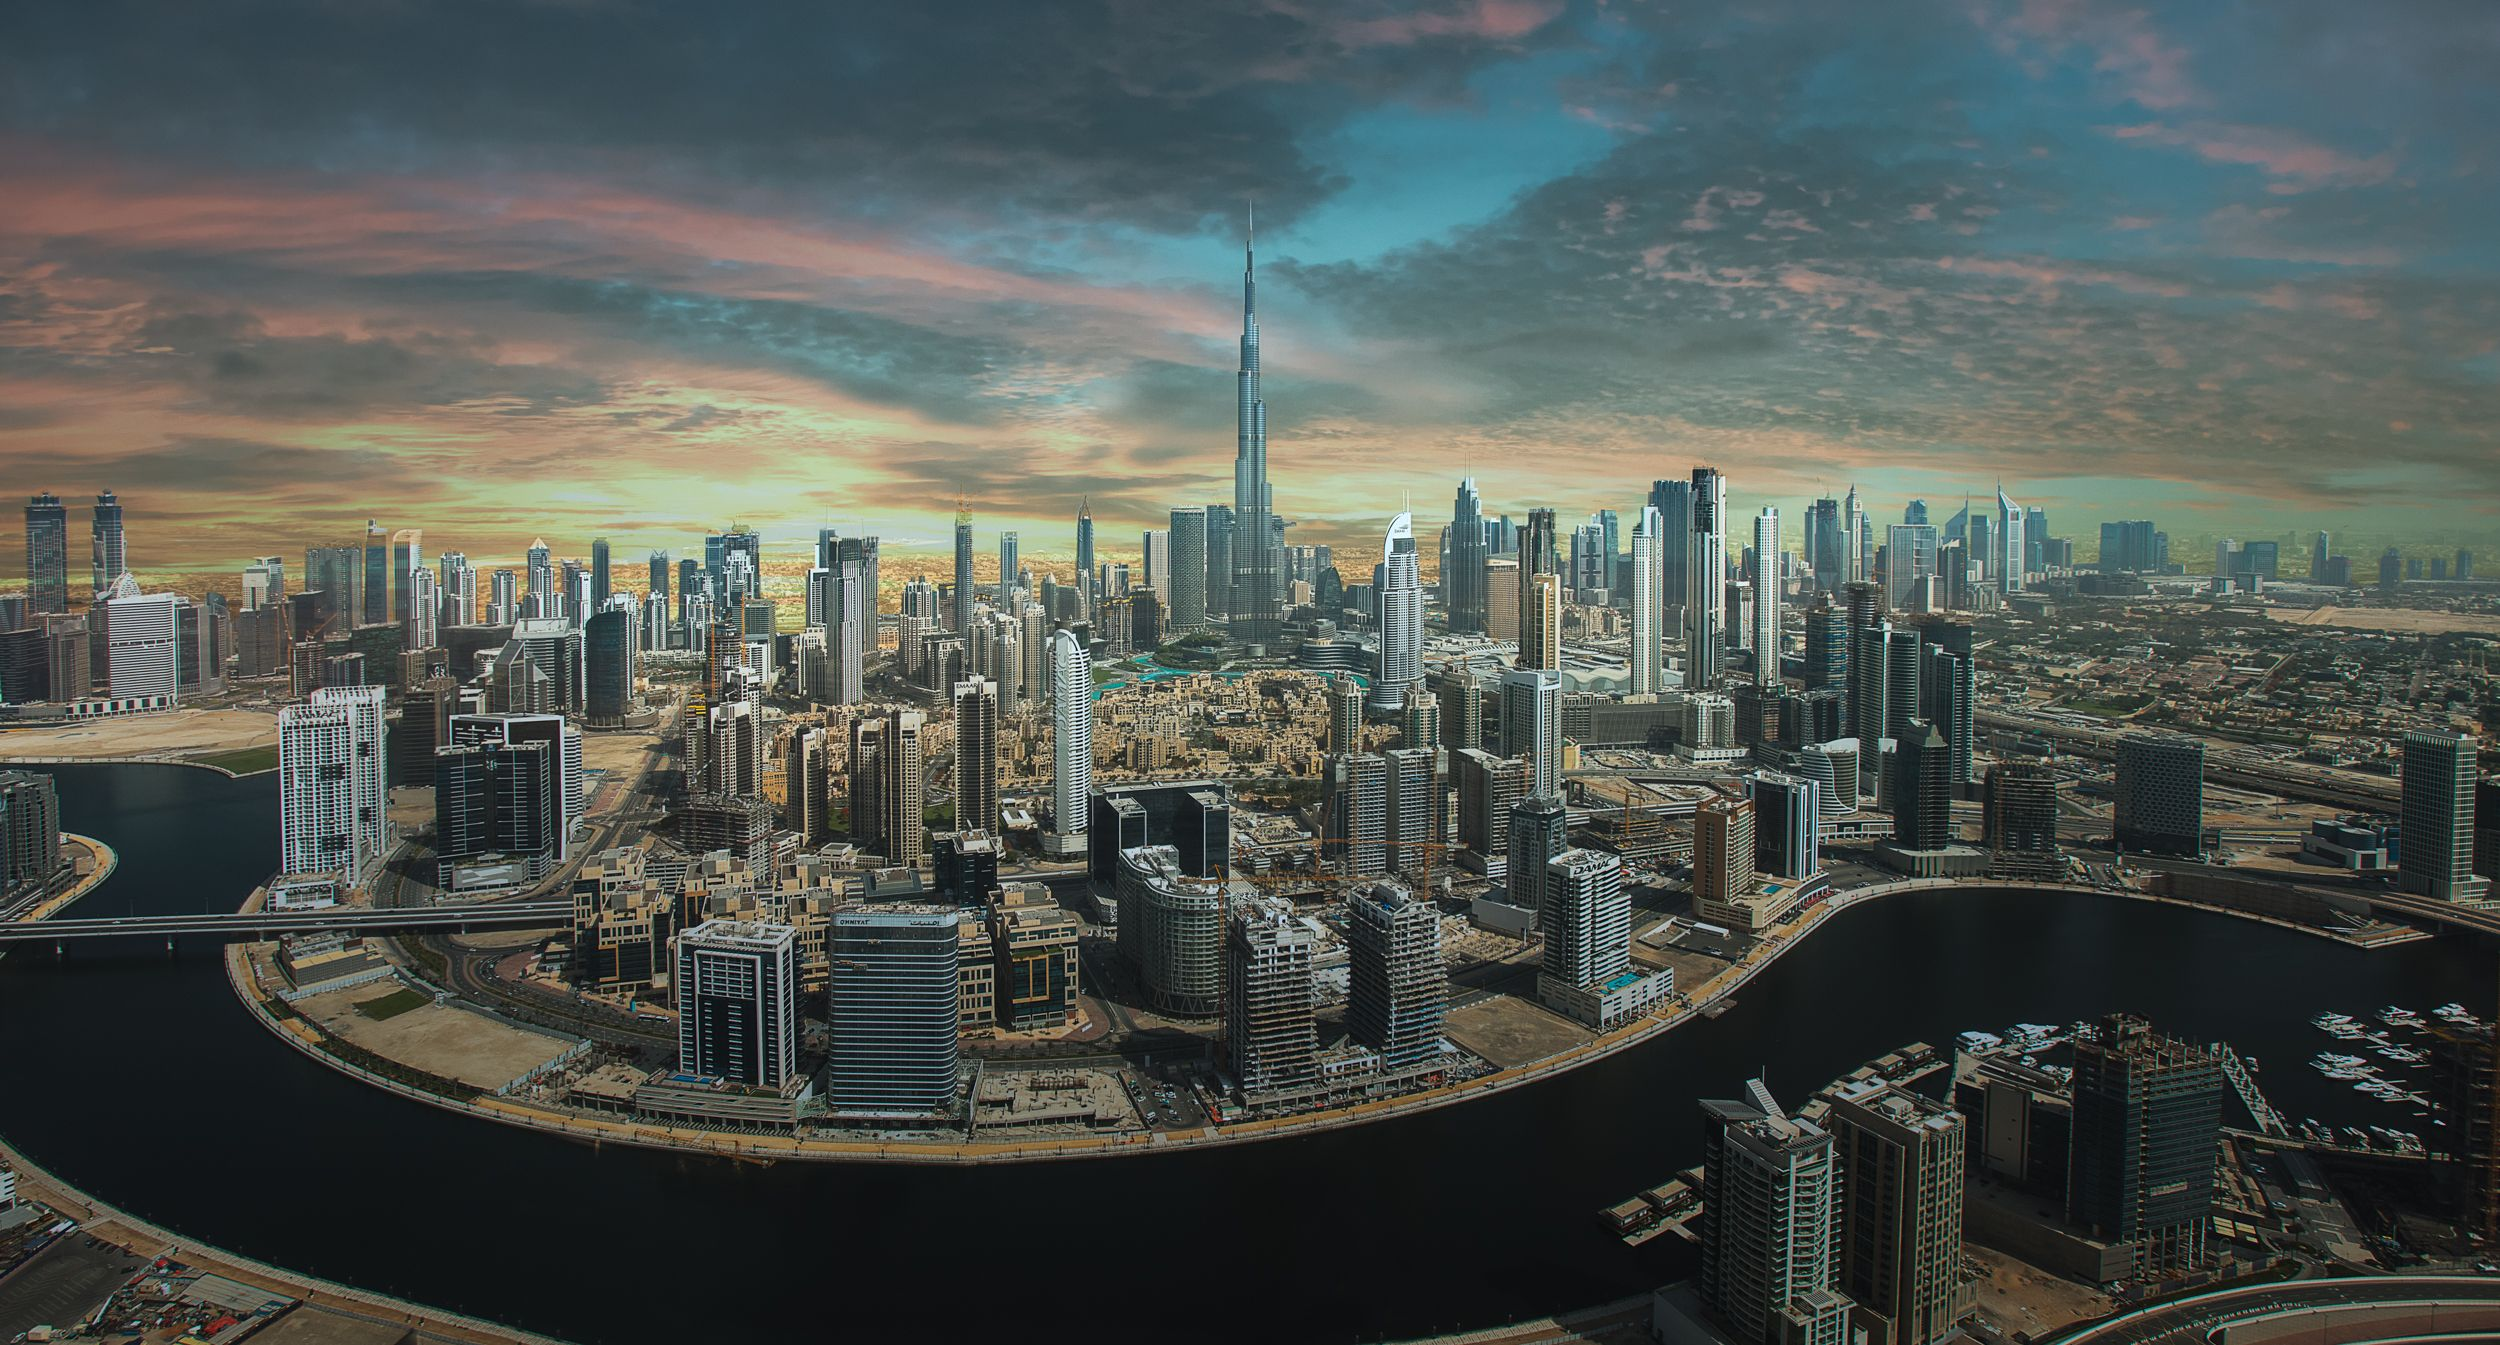 Dubai Skyline by Surface